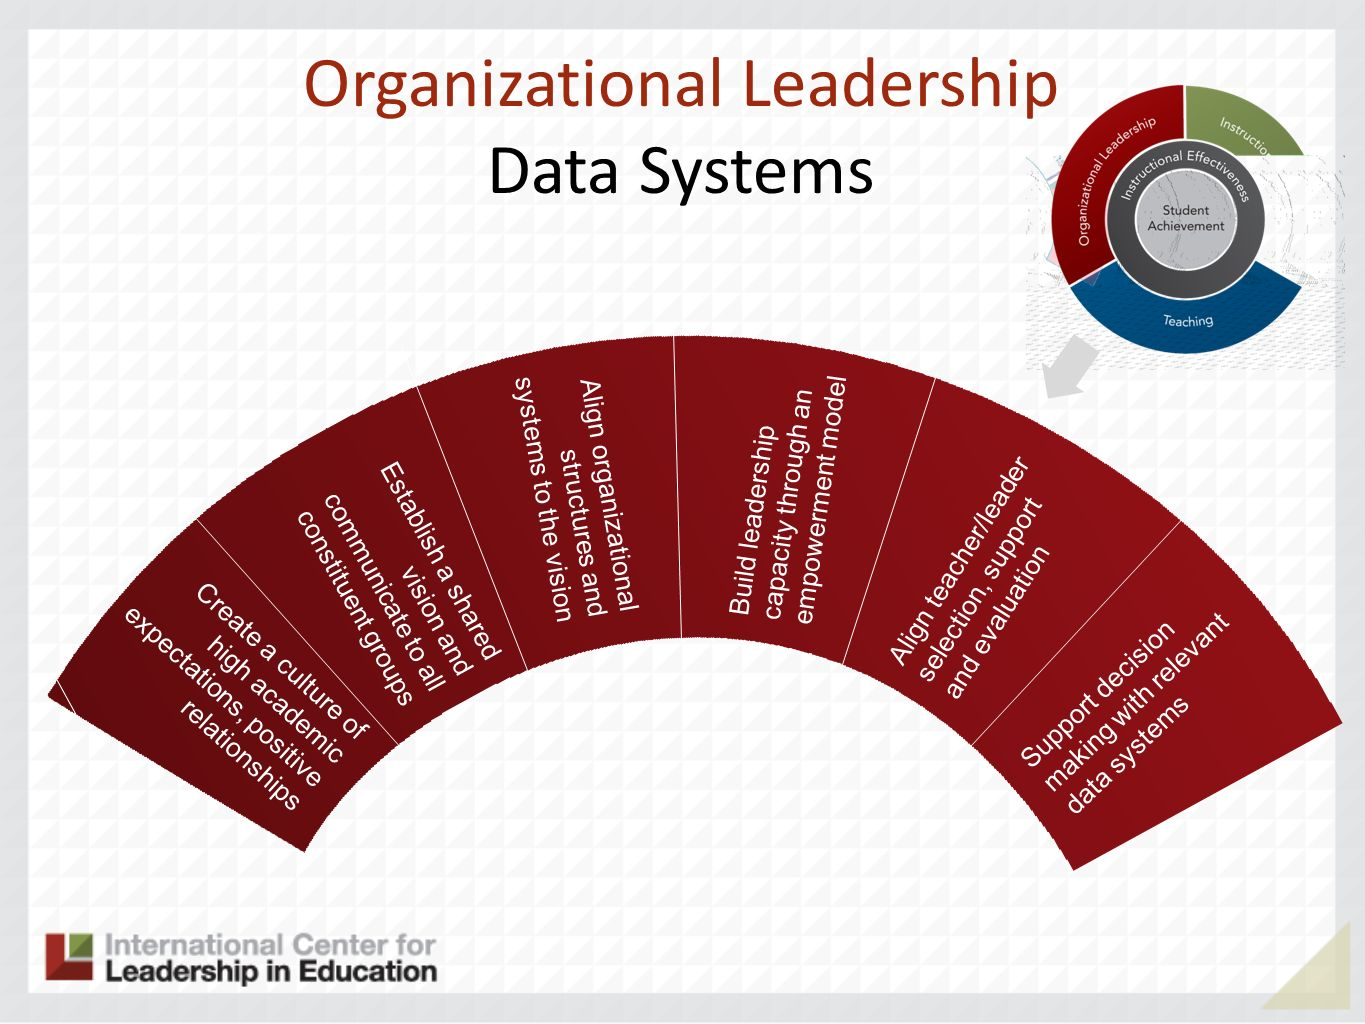 Organizational Leadership Data Systems Create a culture of high academic expectations, positive relationships Establish a shared vision and communicat